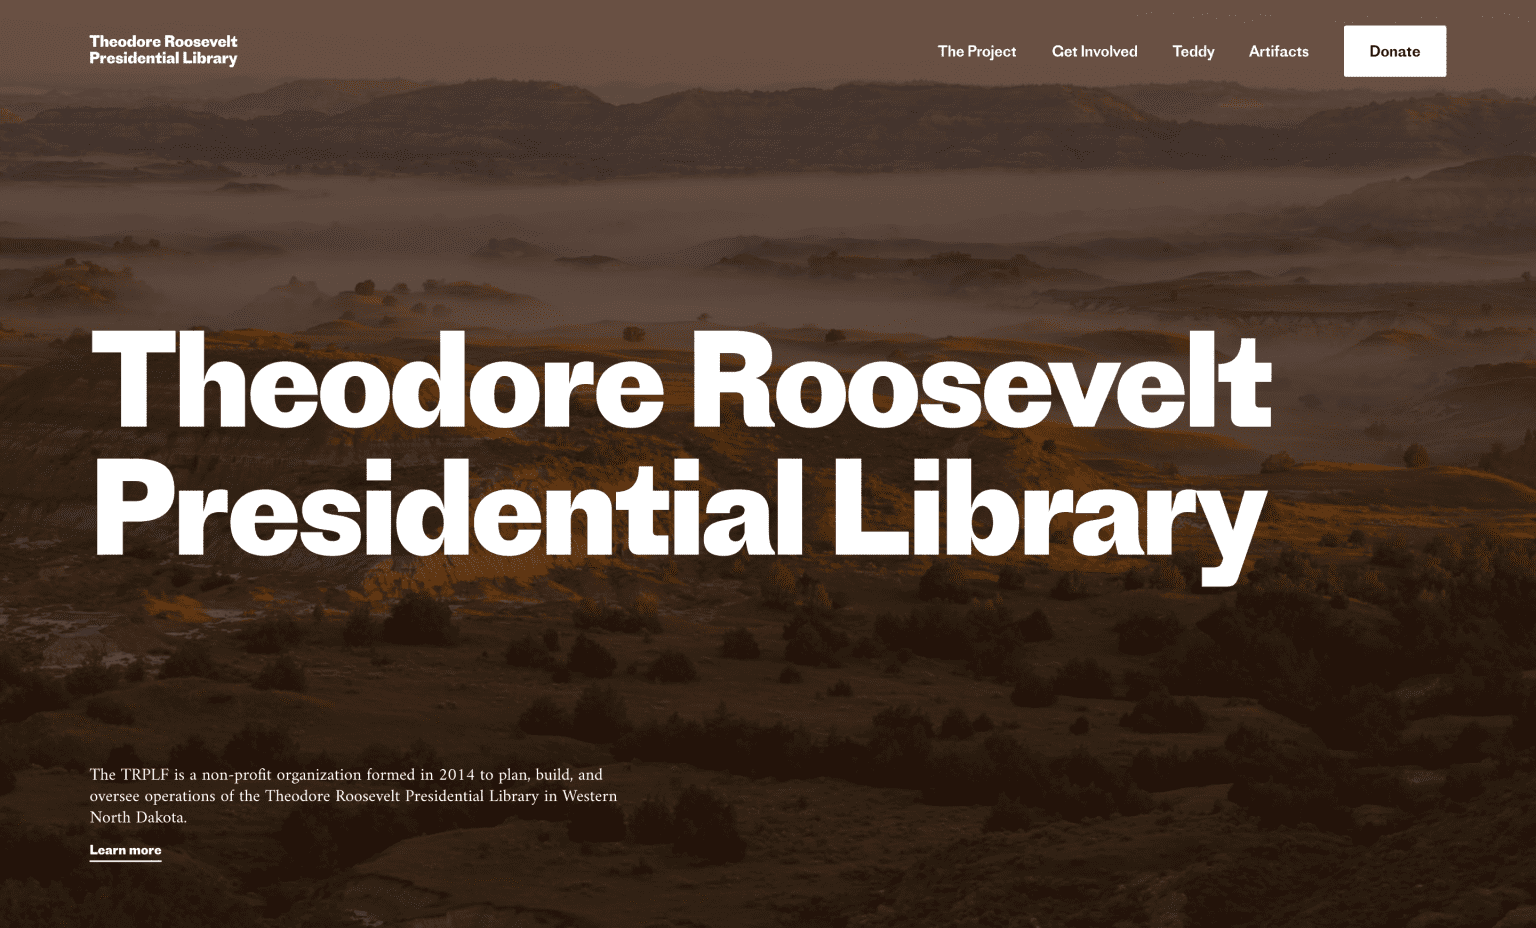 Theodore Roosevelt Presidential Library